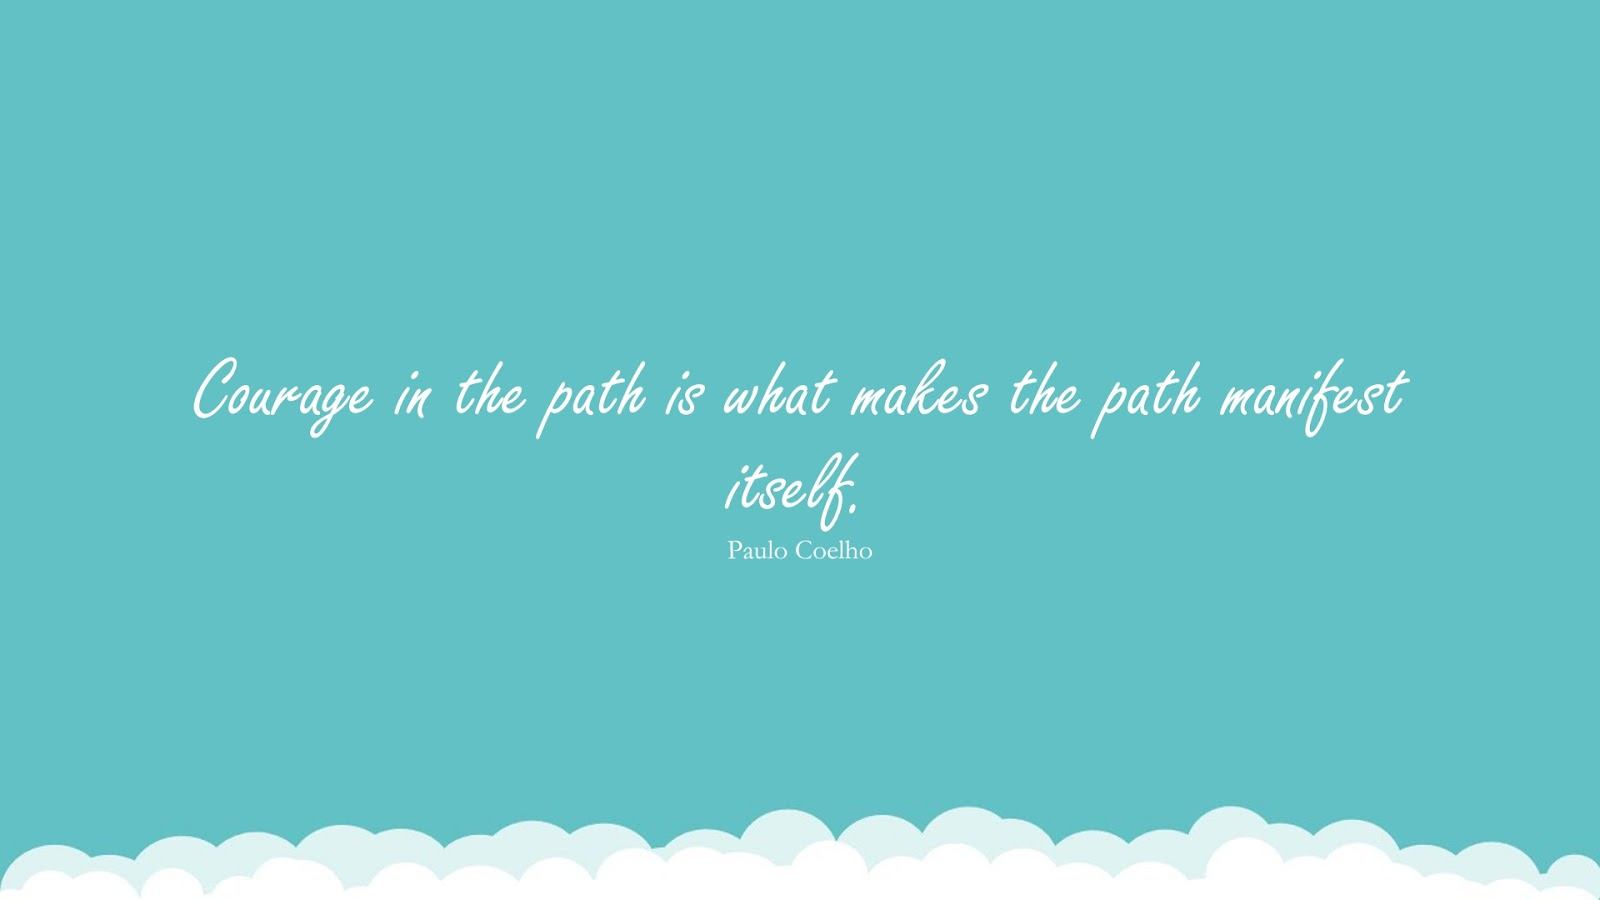 Courage in the path is what makes the path manifest itself. (Paulo Coelho);  #EncouragingQuotes